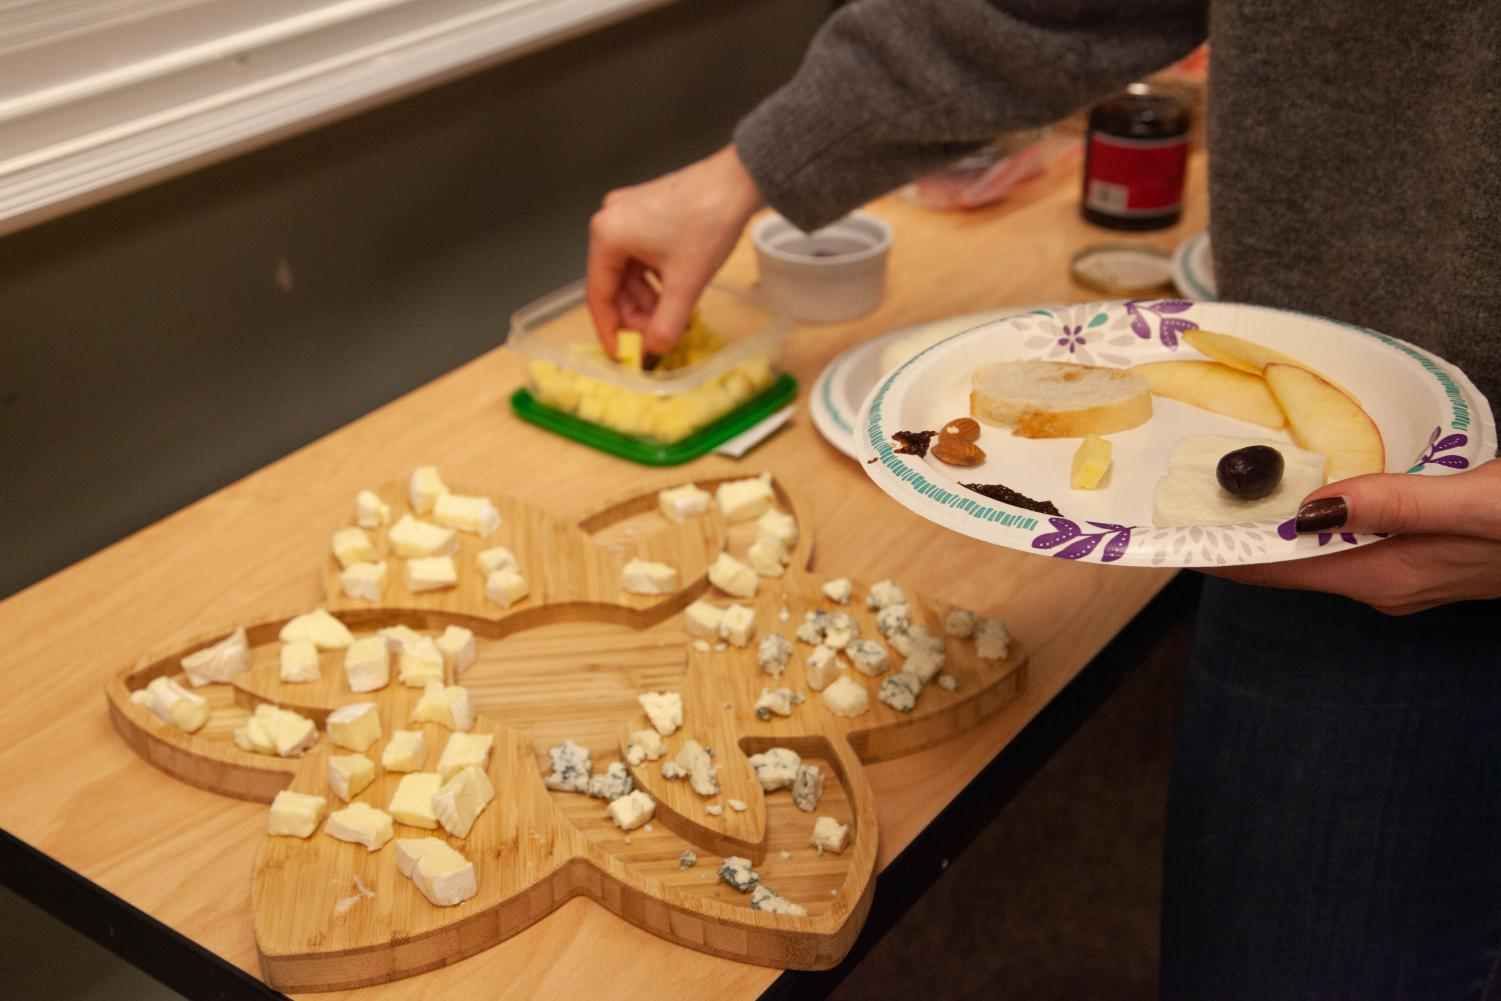 Northeastern's Cheese Club focuses on celebrating the food and also bringing together the larger cheese community.